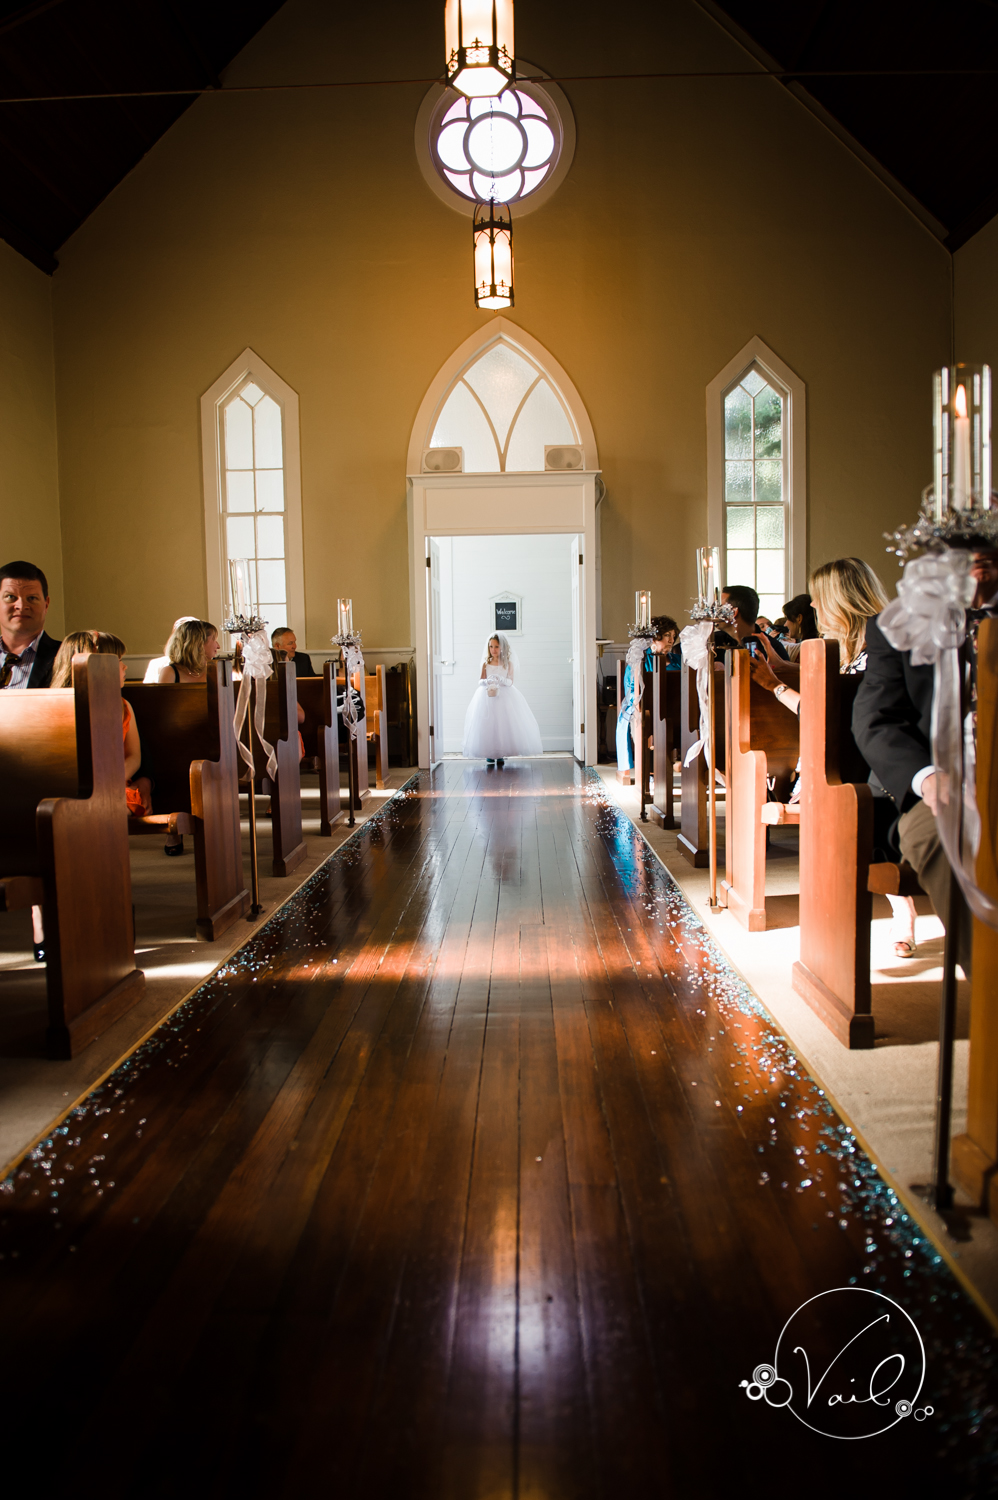 Belle Chapel Snohomish Wedding photographs by Vail Studio-25.jpg